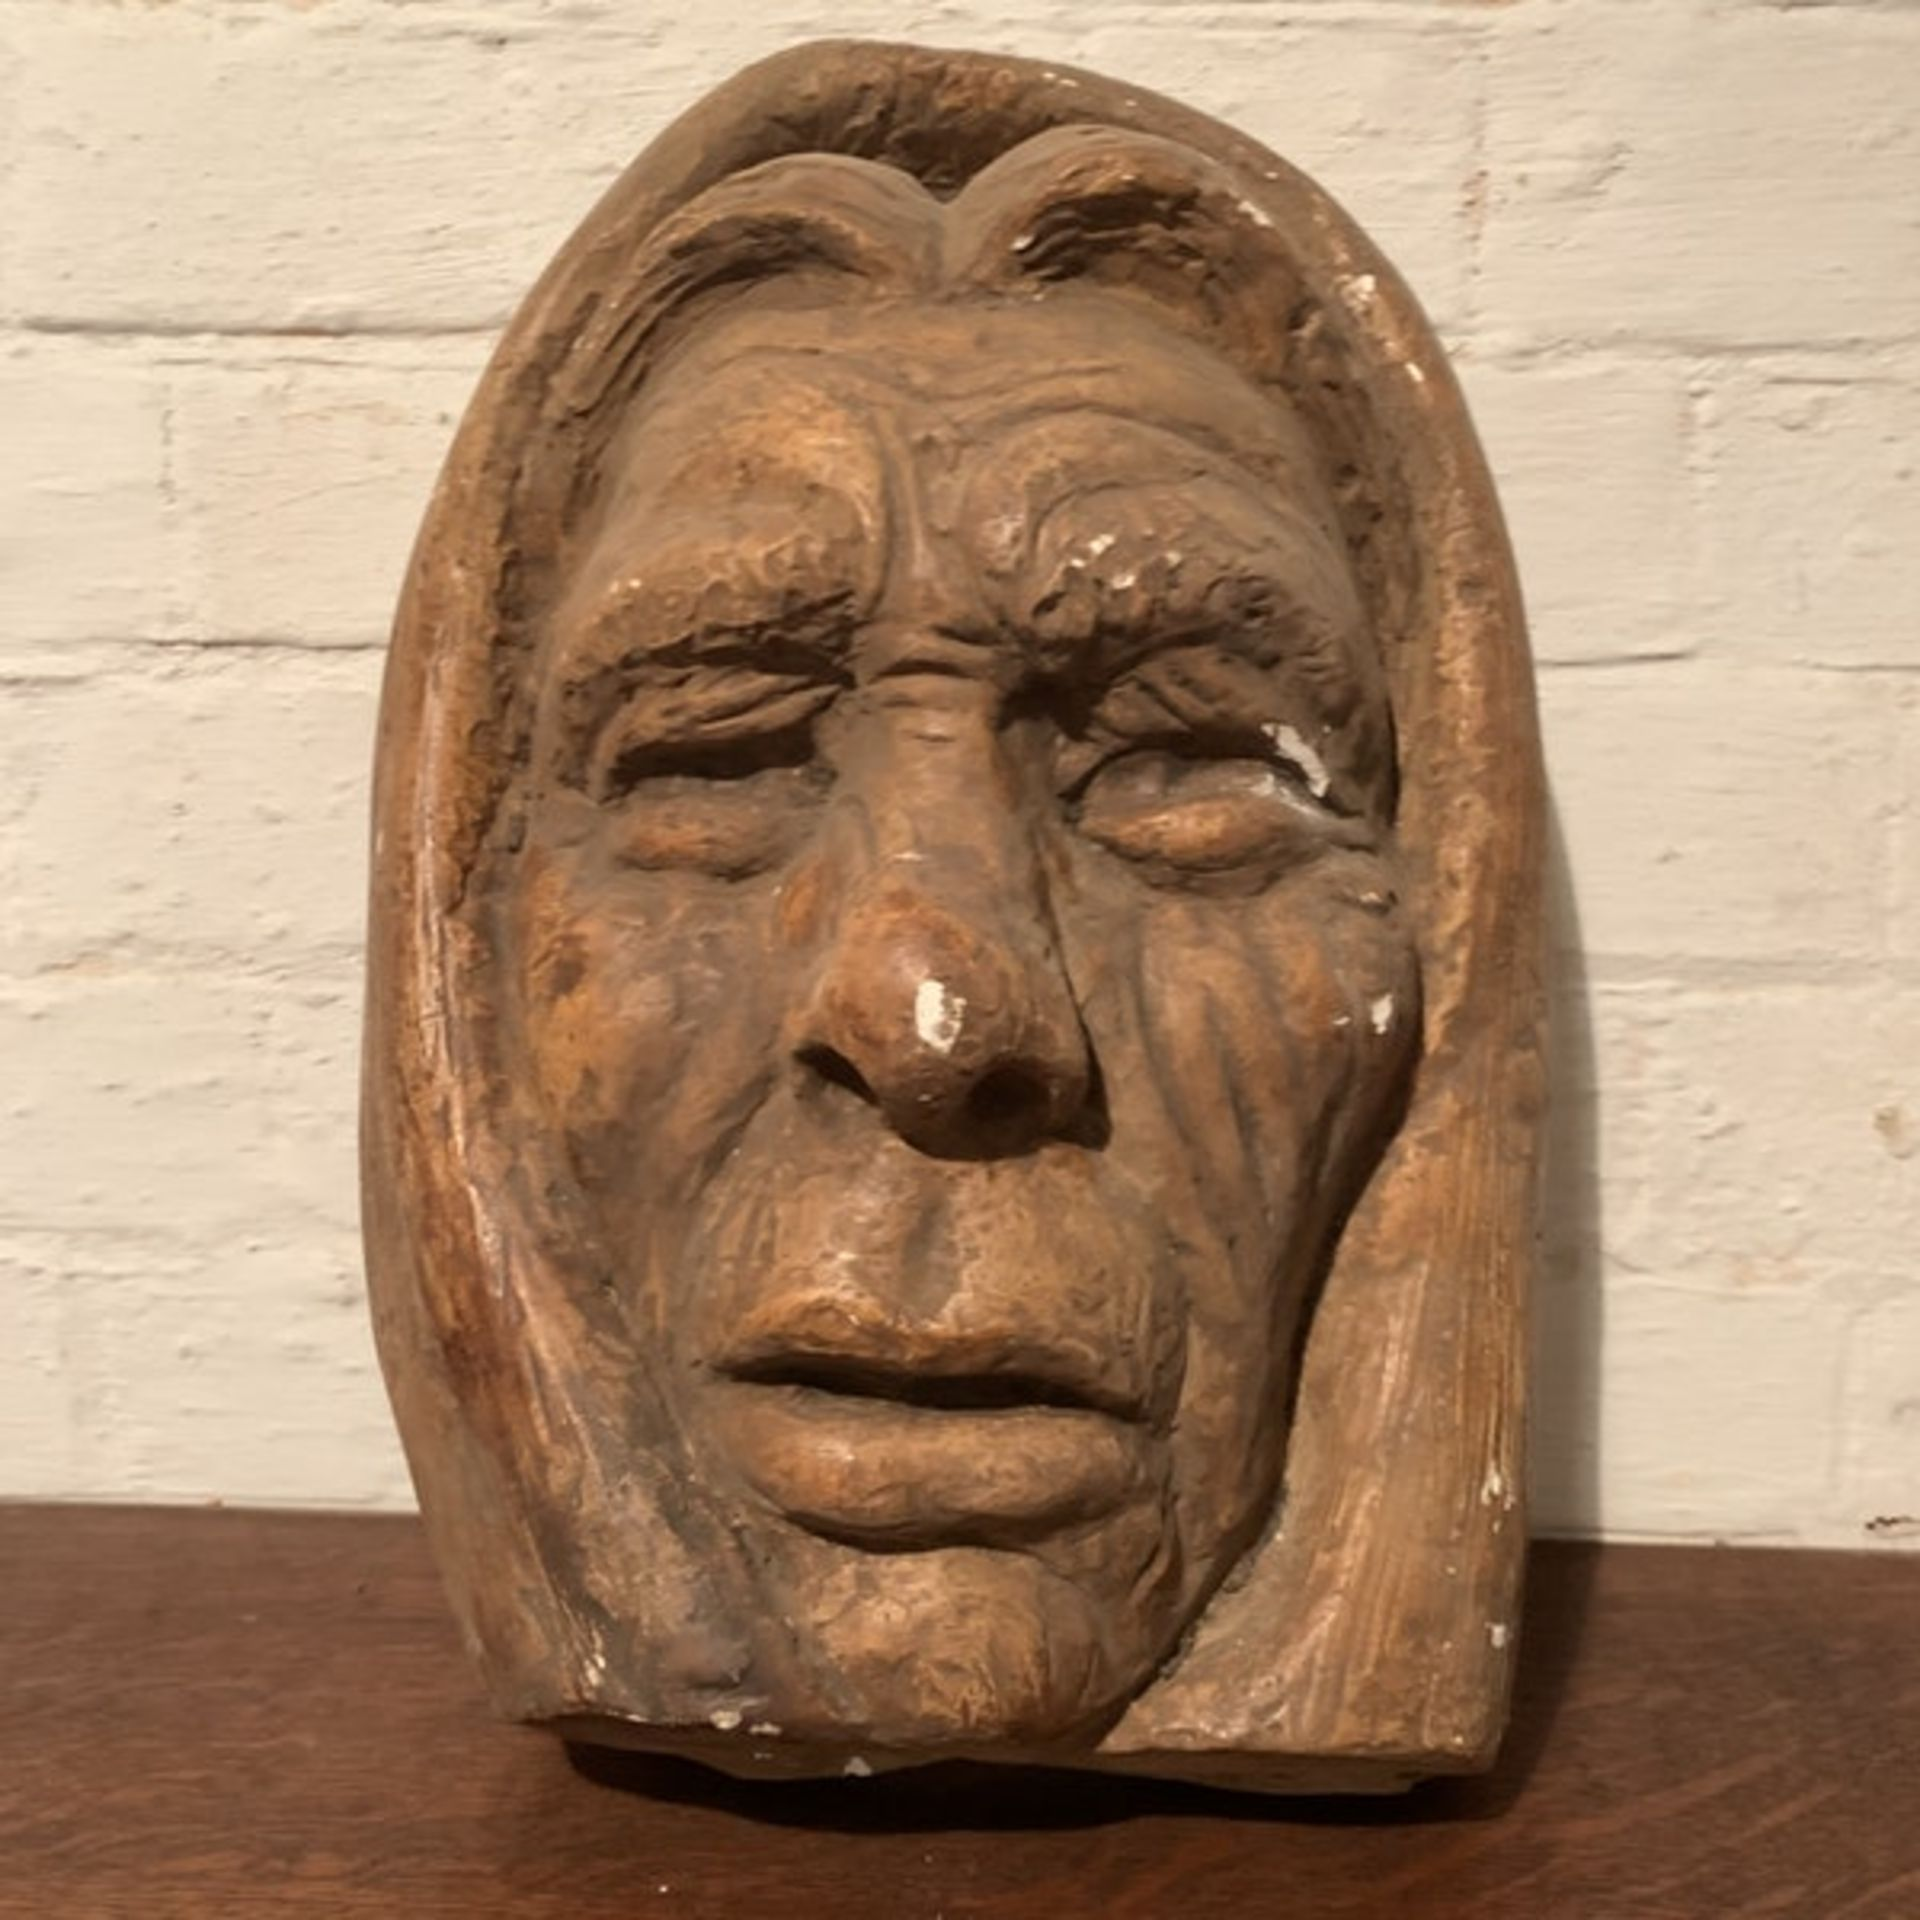 A well executed plaster sculpture of a mans face, not attributed to any artist